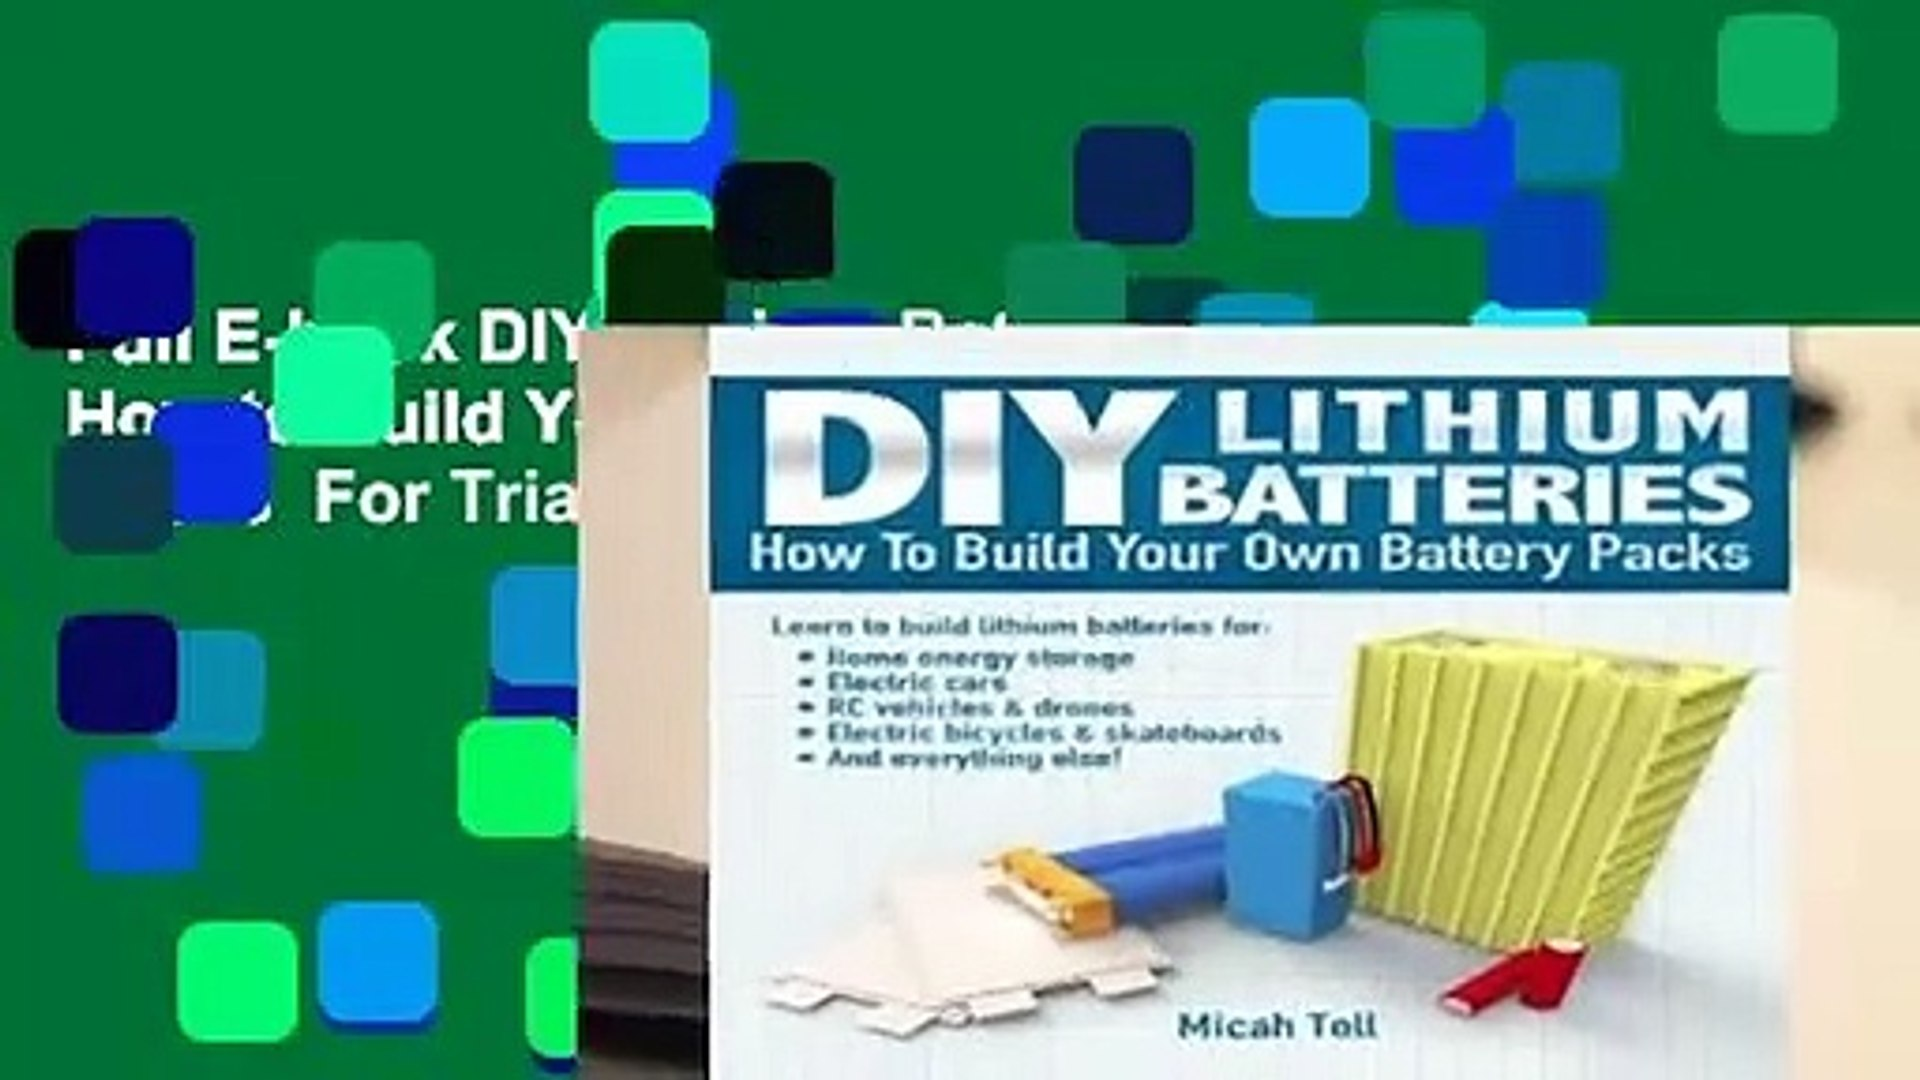 Full E-book DIY Lithium Batteries: How to Build Your Own Battery Packs  For Trial